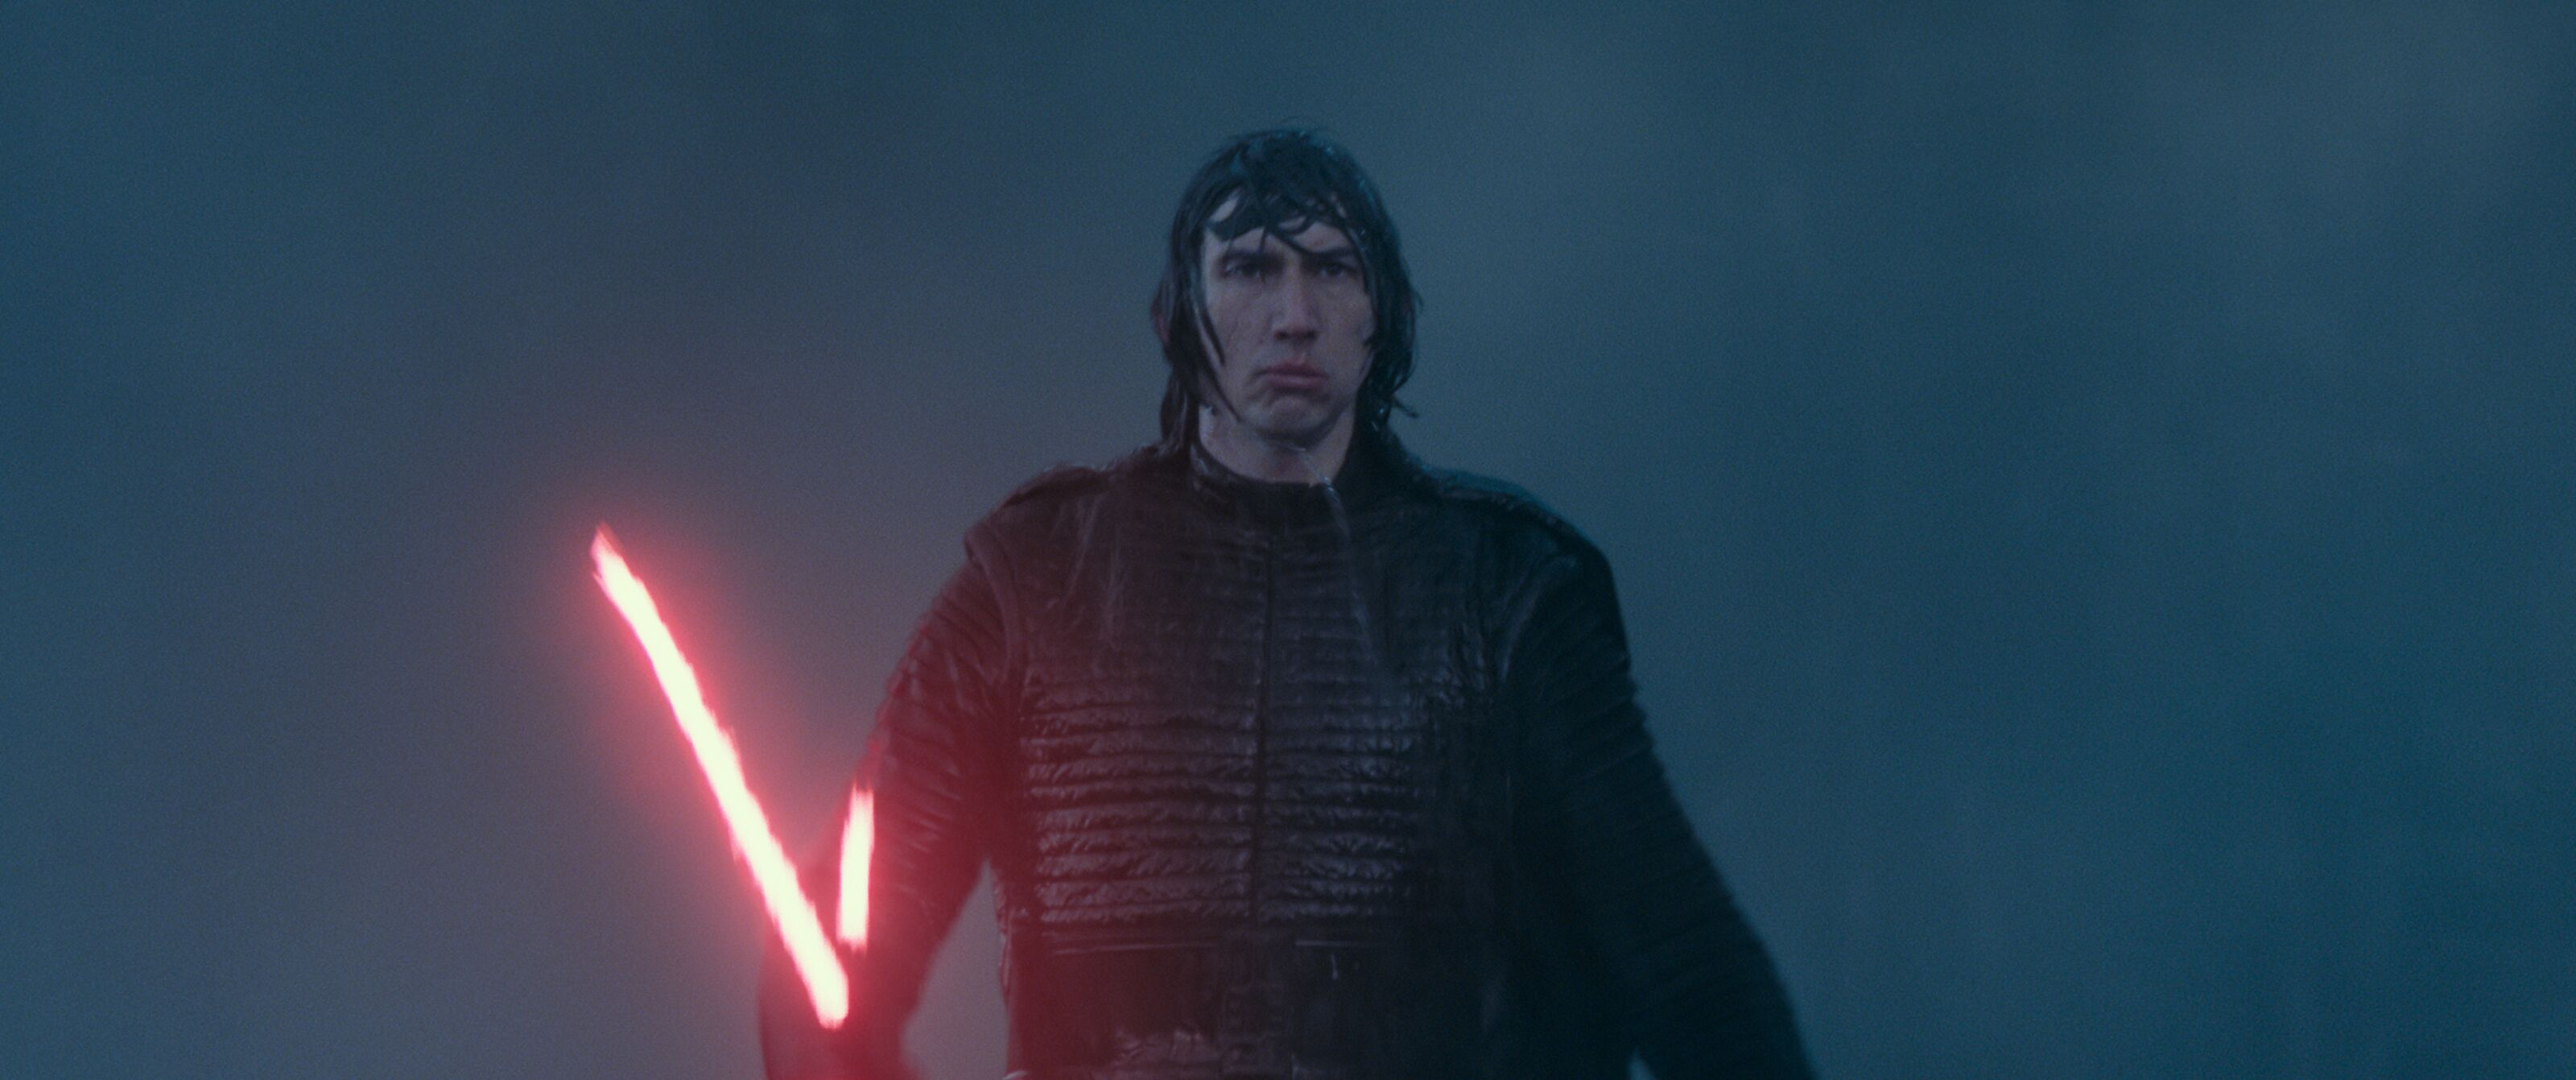 What would Darth Vader really think of Kylo Ren?